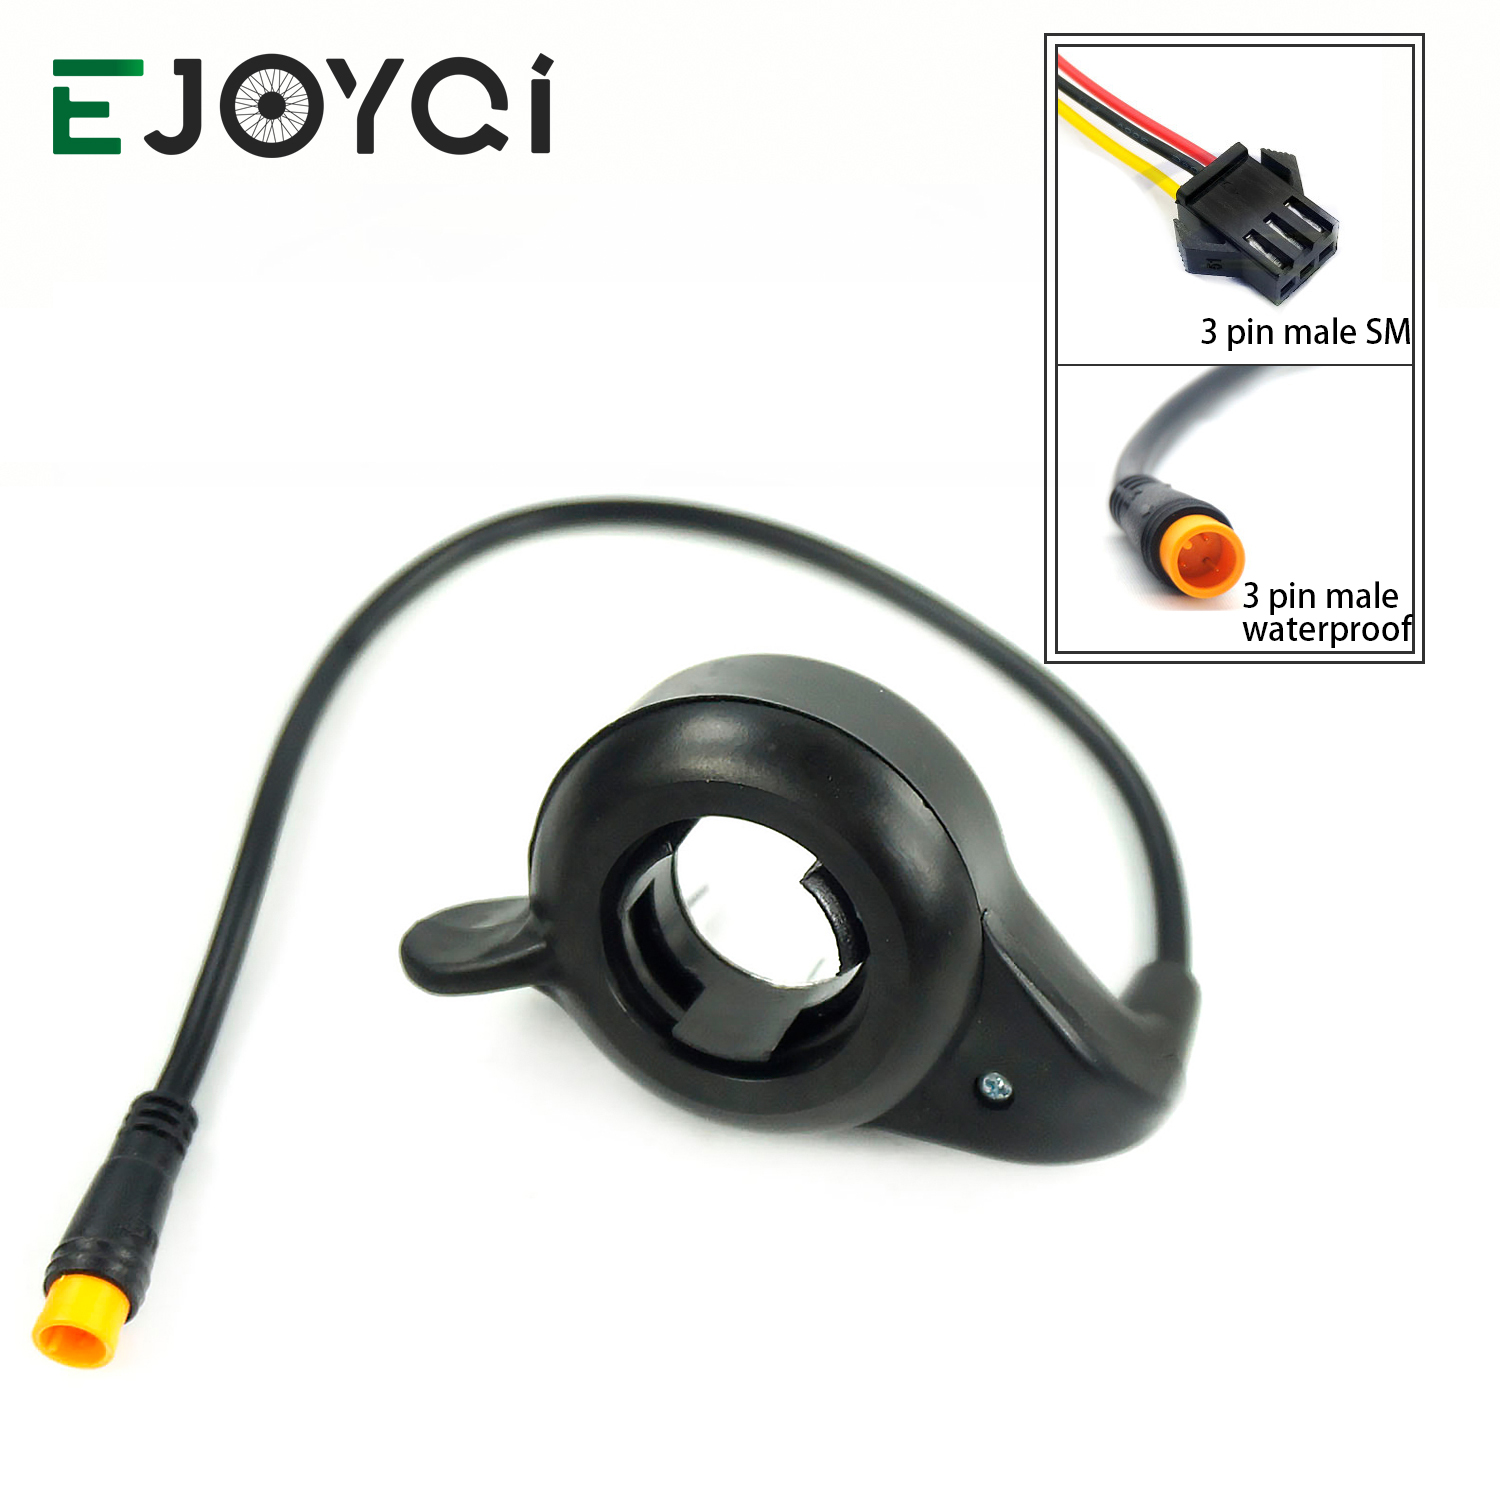 EJOYQI WUXING Brand Ebike FT-21X  Finger Thumb Throttle Right Hand SM Waterproof 3 Pin Connector Electric Bicycle Part